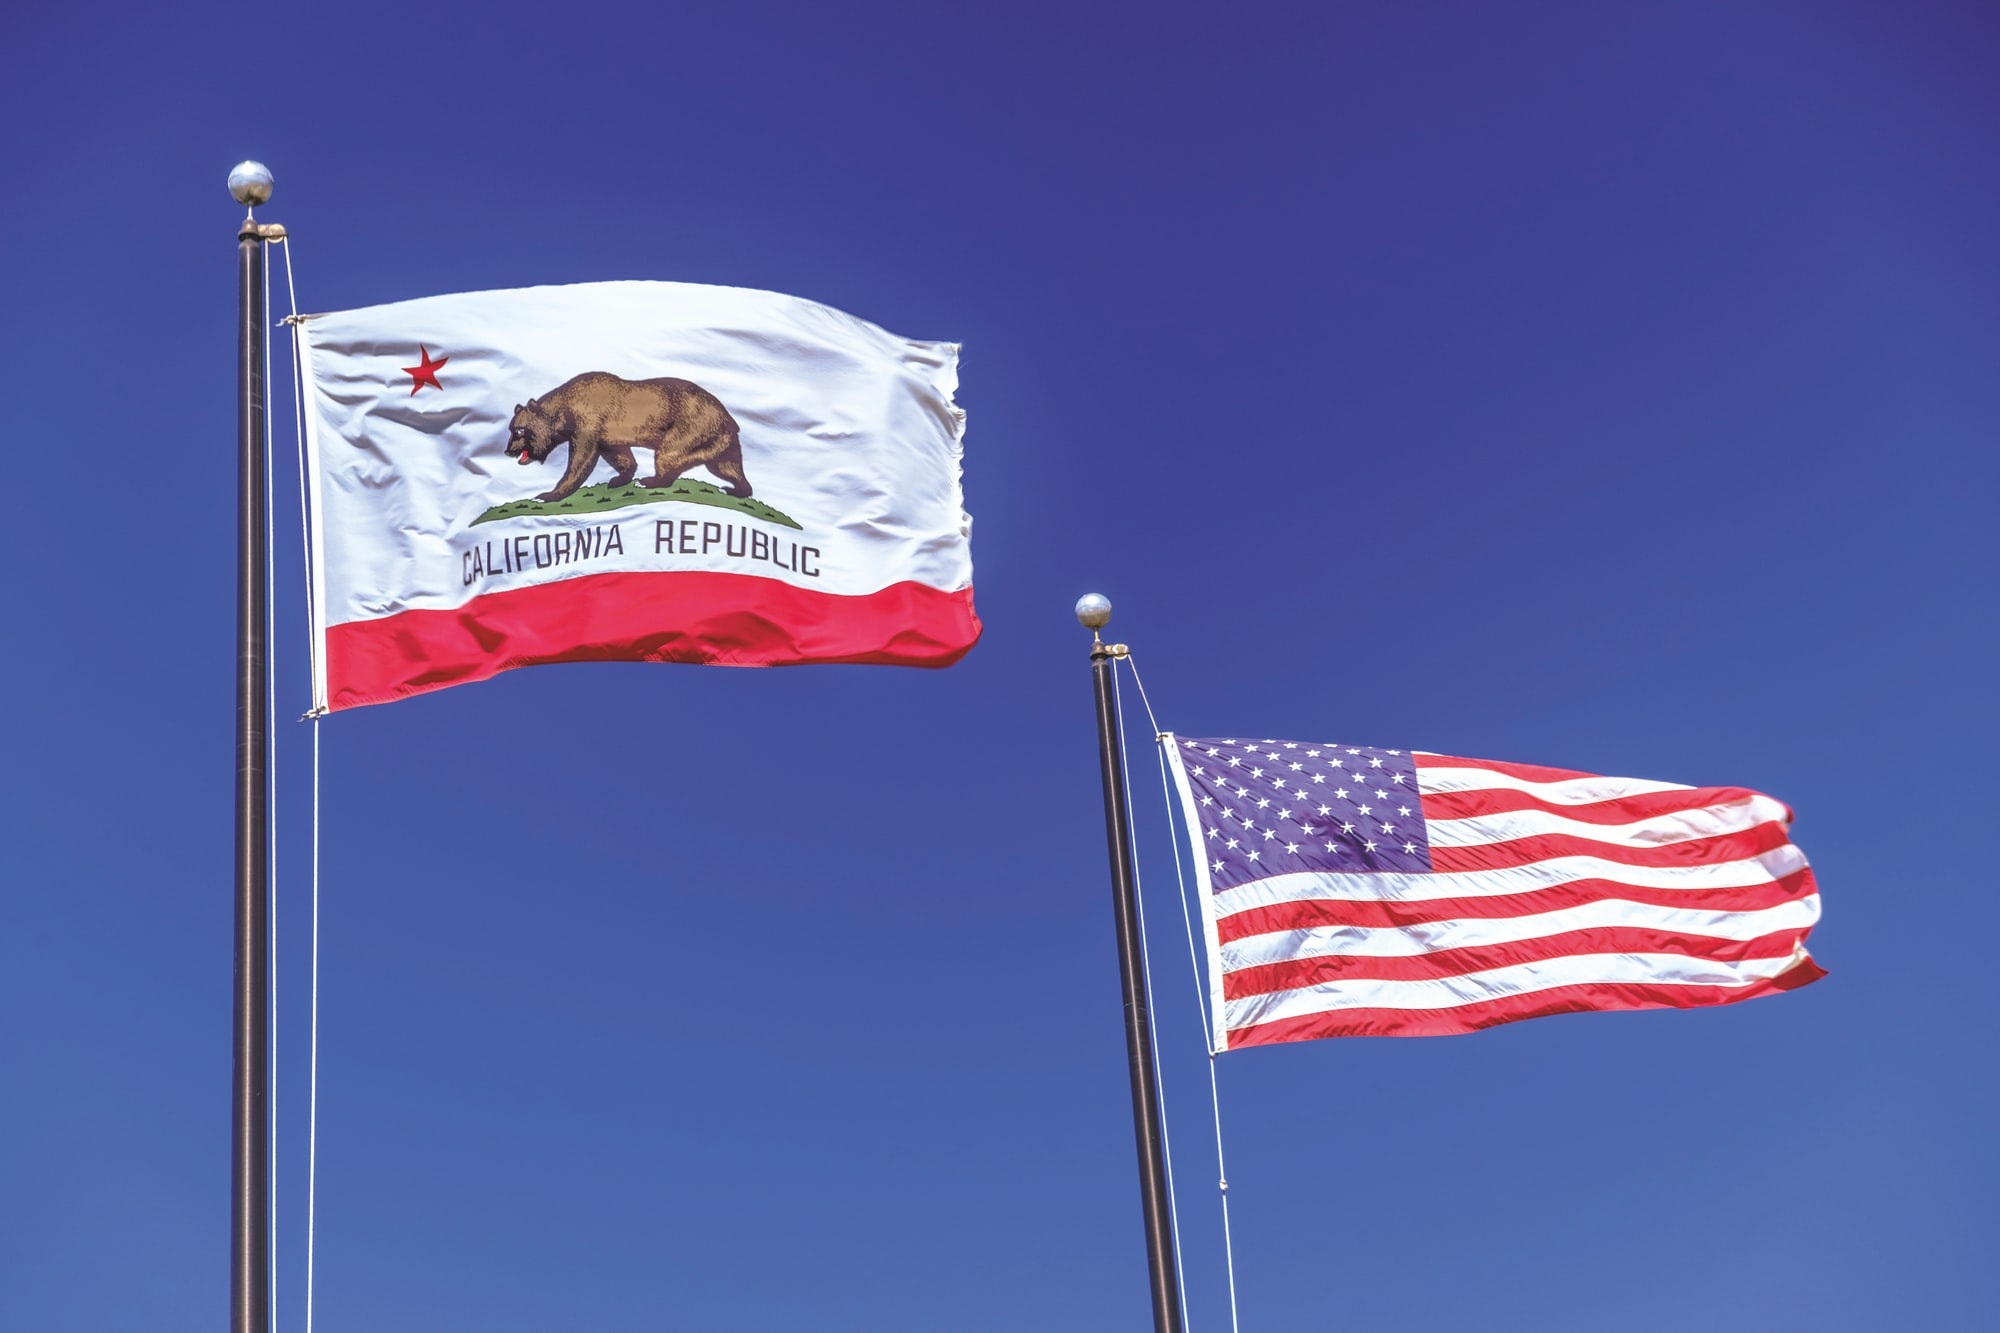 California, here we come: How companies need to prepare for new digital privacy laws